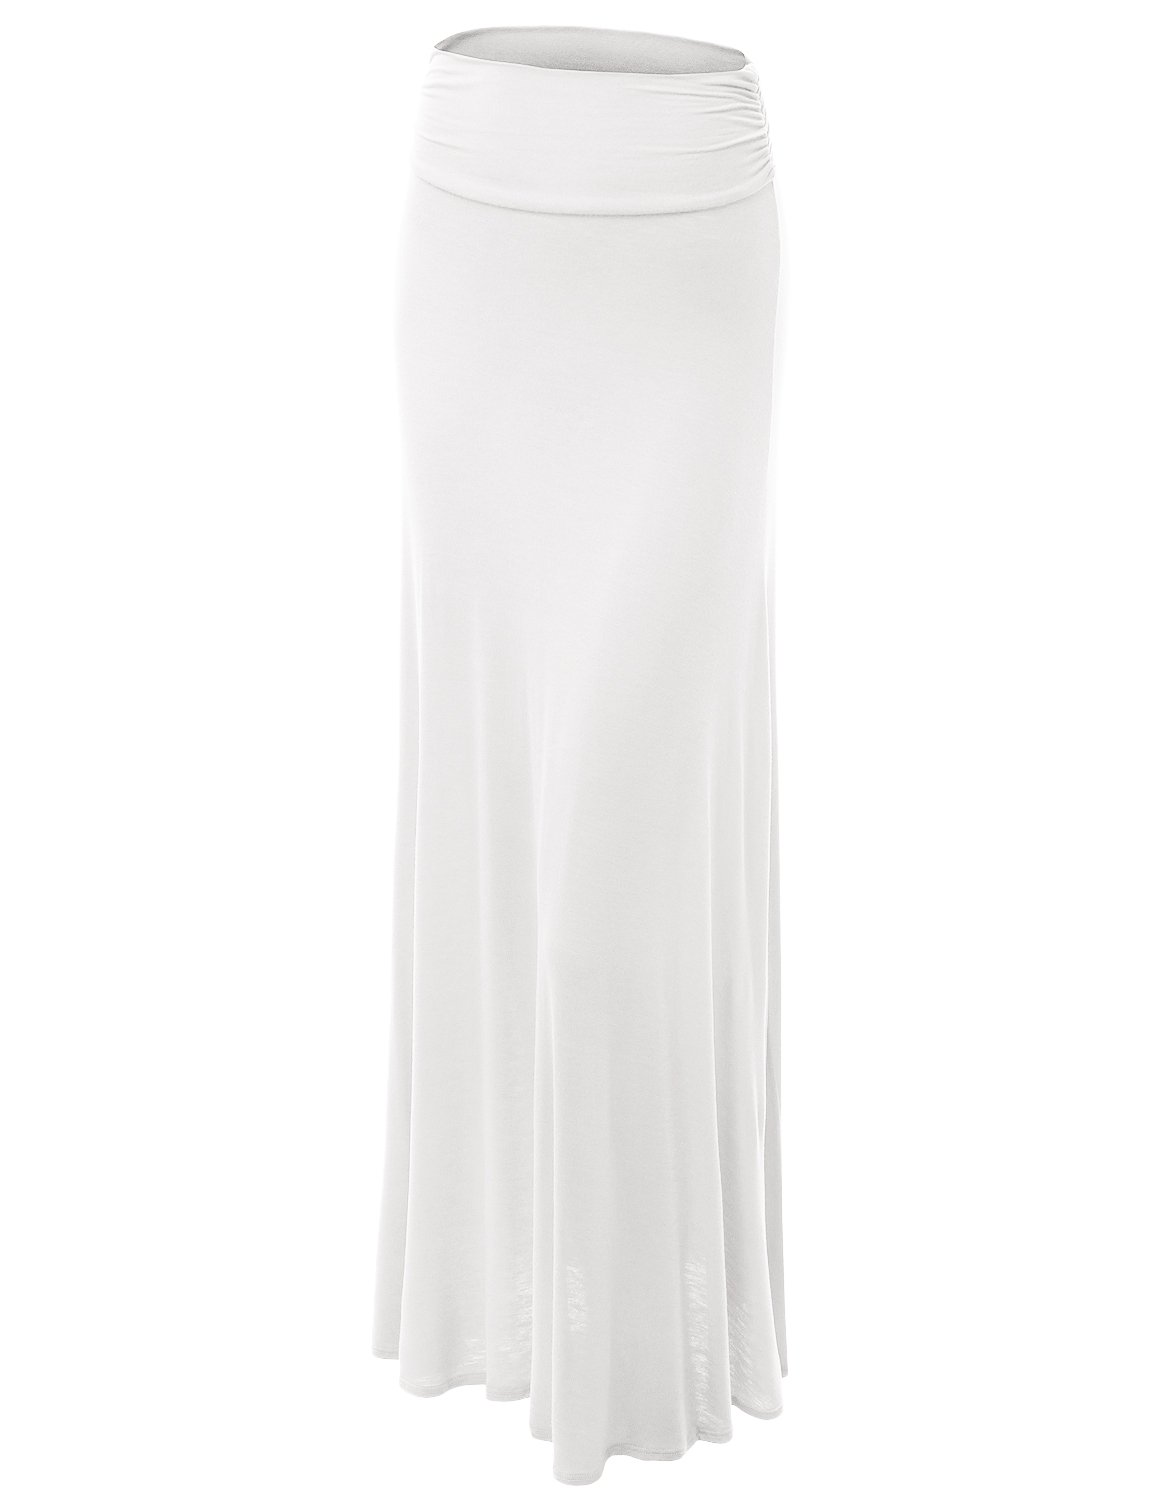 Made By Johnny WB296 Womens Lightweight Floor Length Maxi Skirt L WHITE